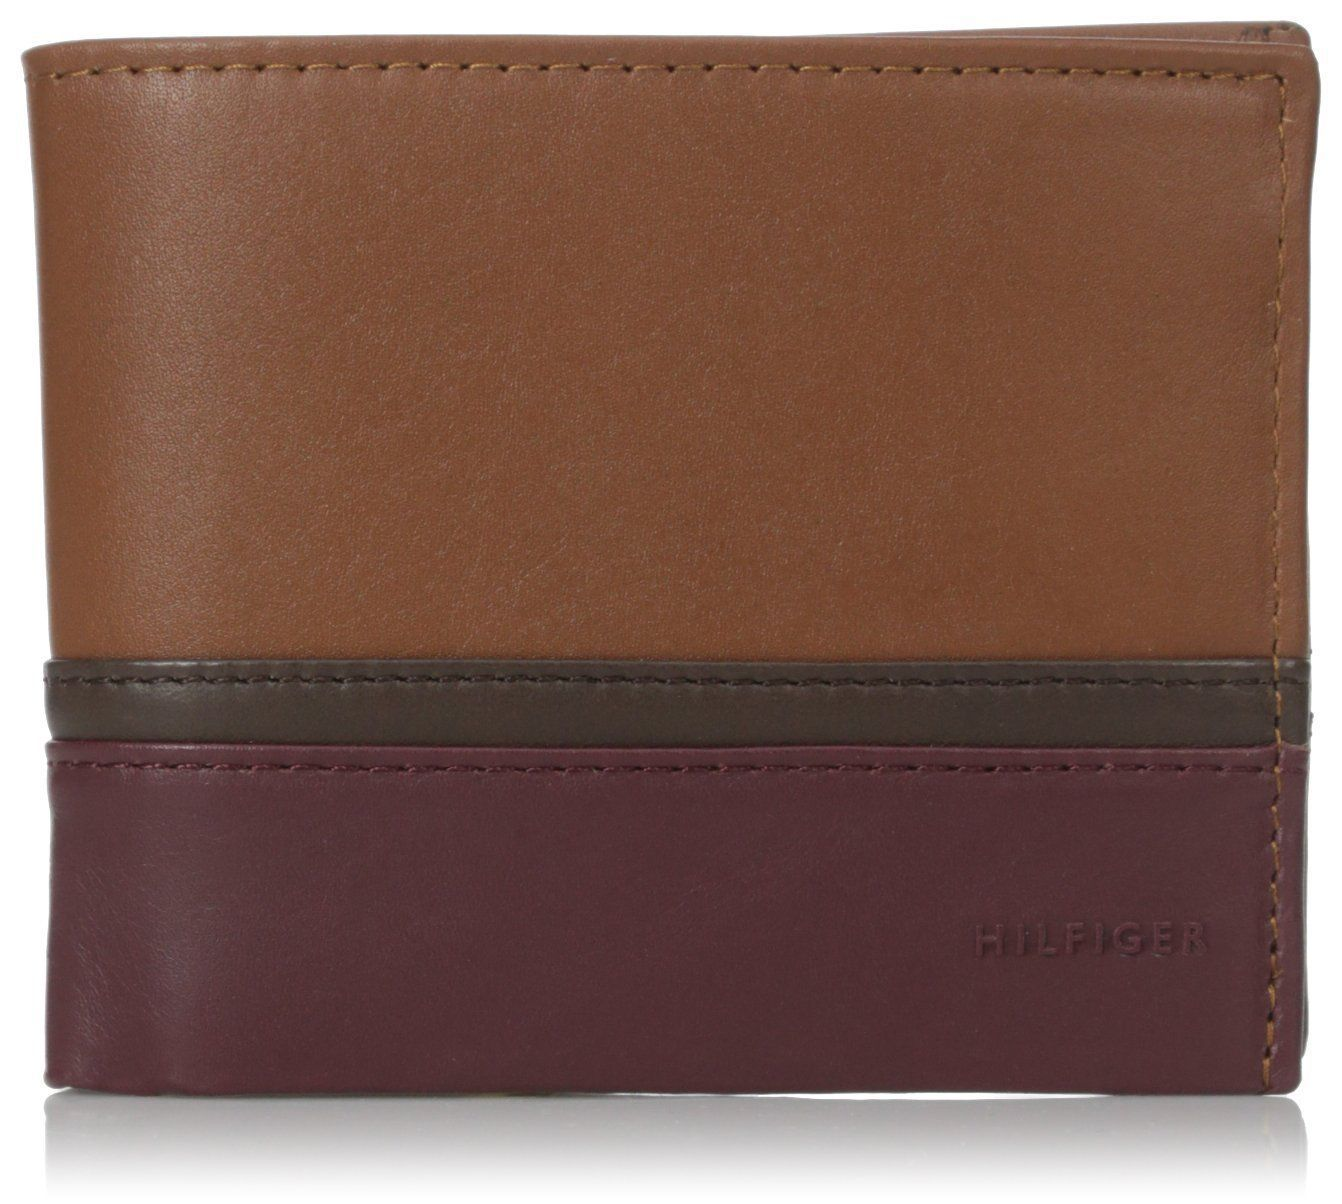 NEW TOMMY HILFIGER MEN'S LEATHER BIFOLD WALLET ID CARD SADDLE OXBLOOD 31TL13X041